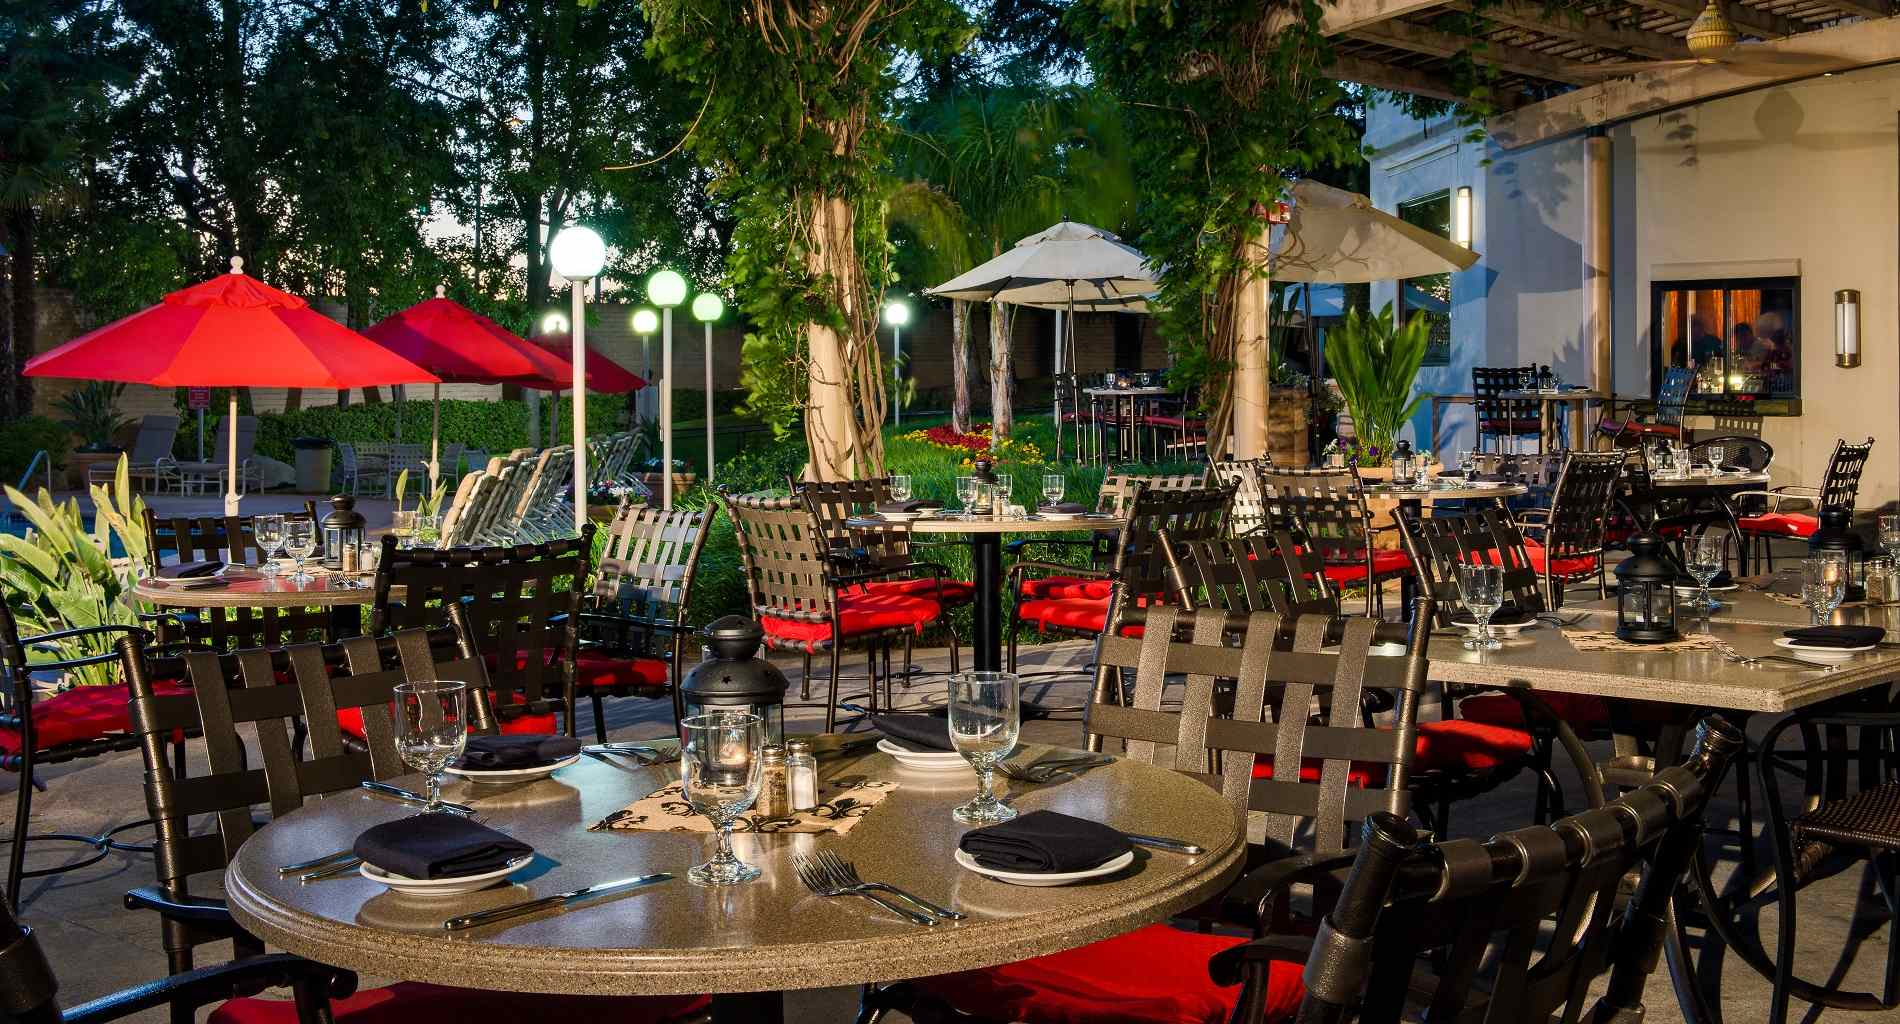 Join Us For A Relaxing Meal At The Formaggio Located Inside Sacramento Marriott Rancho Cordova